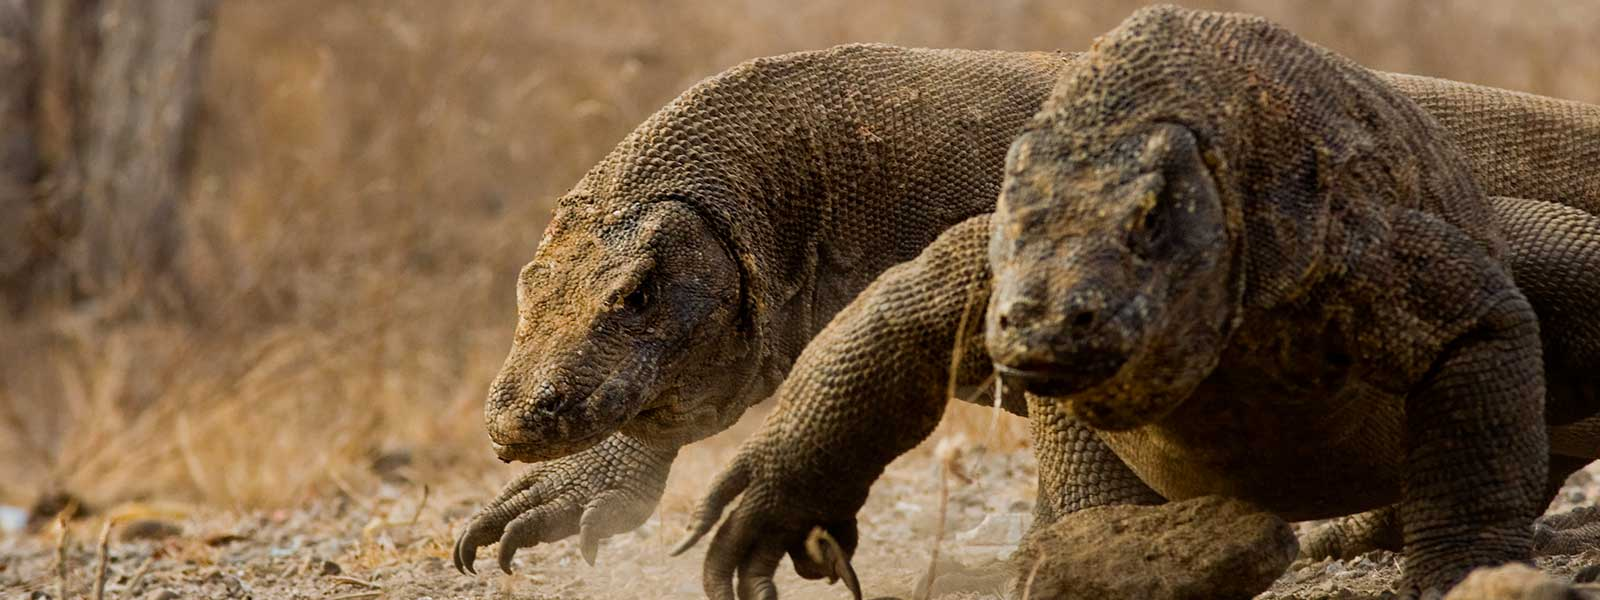 Komodo Dragon population